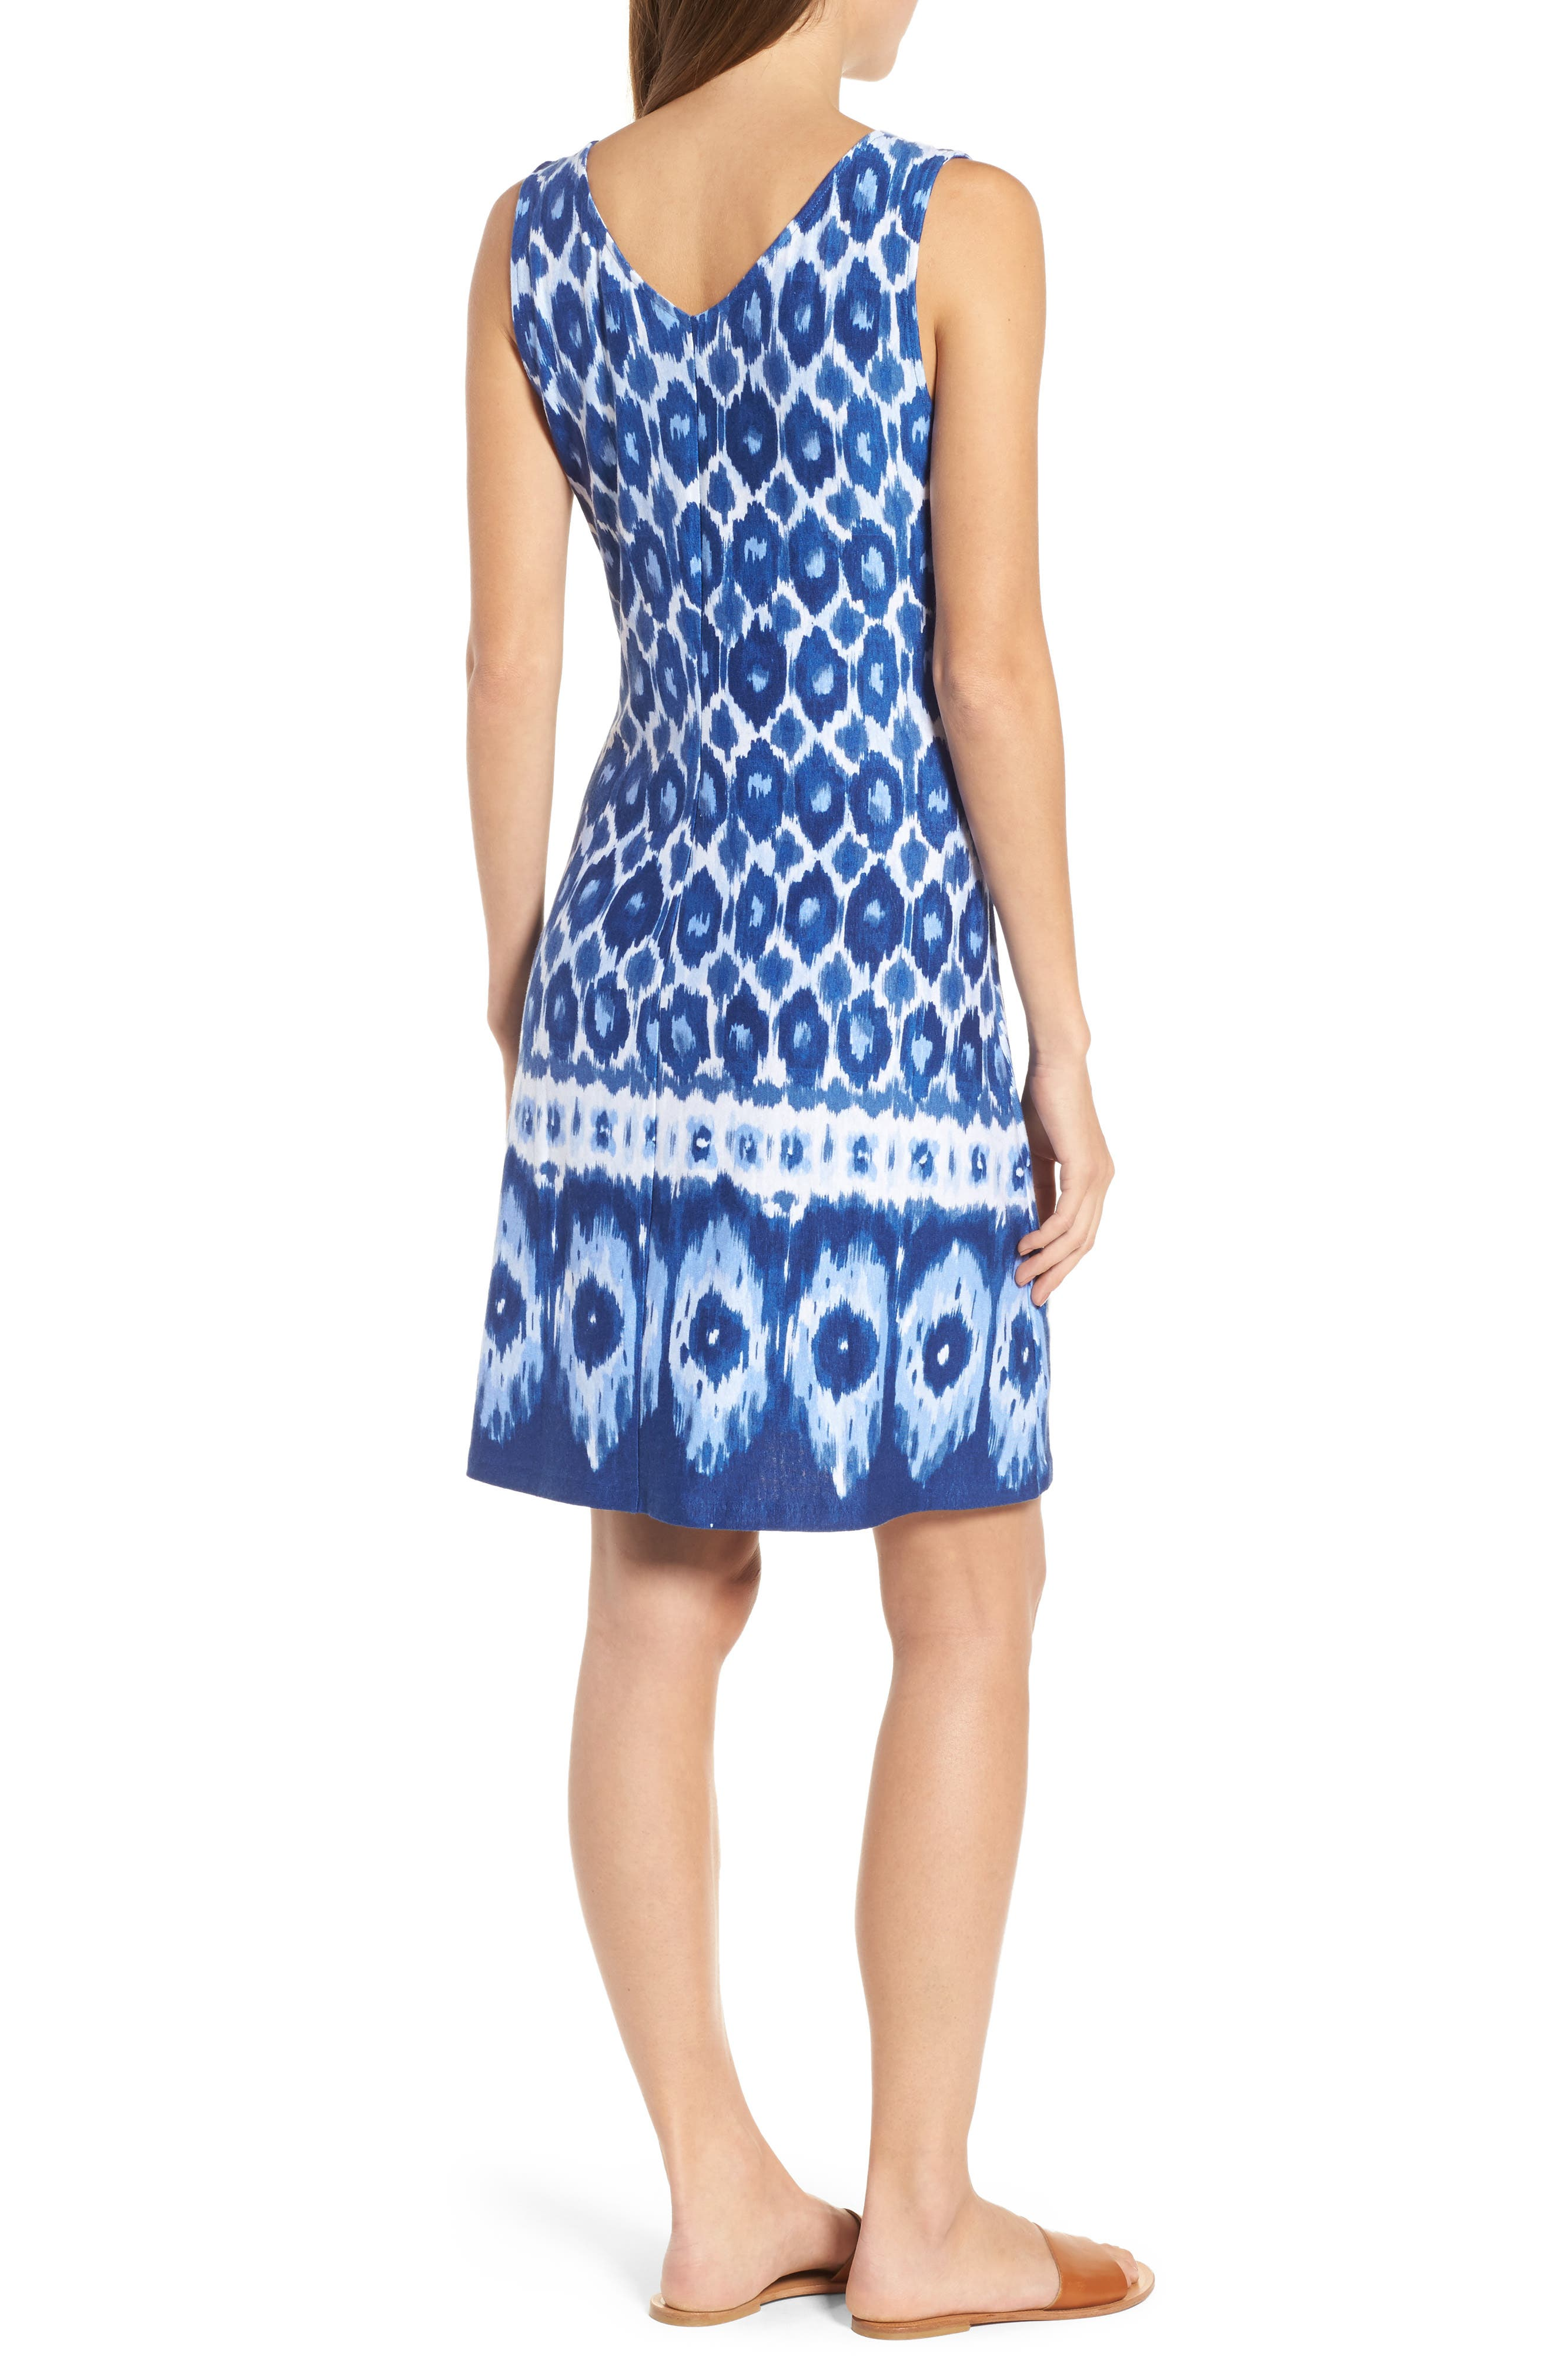 Innercoastal Ikat Sleeveless Dress,                             Alternate thumbnail 2, color,                             Kingdom Blue